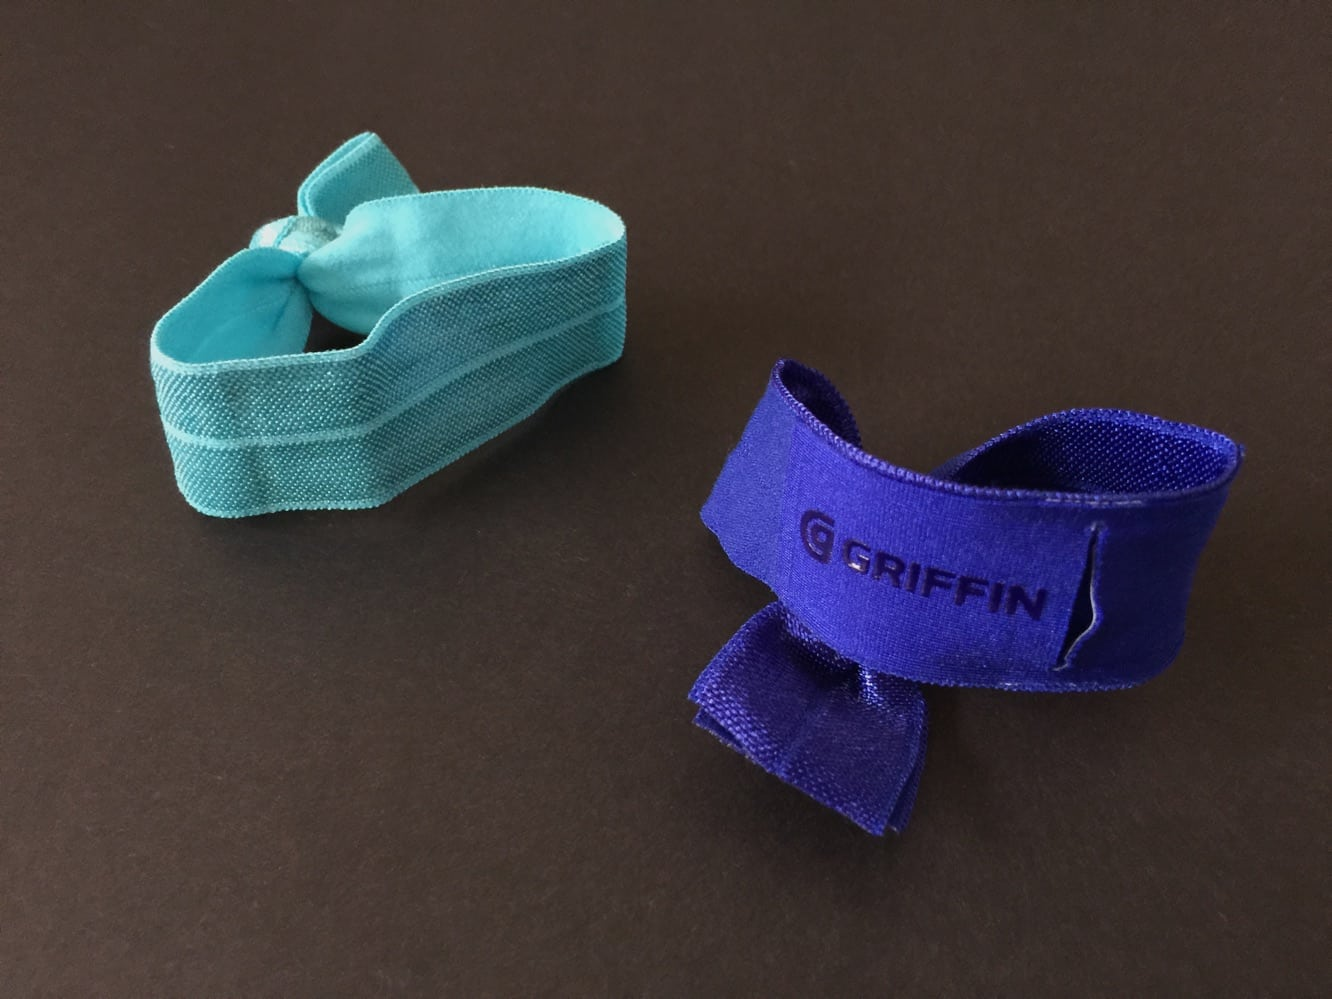 Griffin Ribbon Wristband, Shoe Pouch, Sleep Sport Band + Tracker Clip